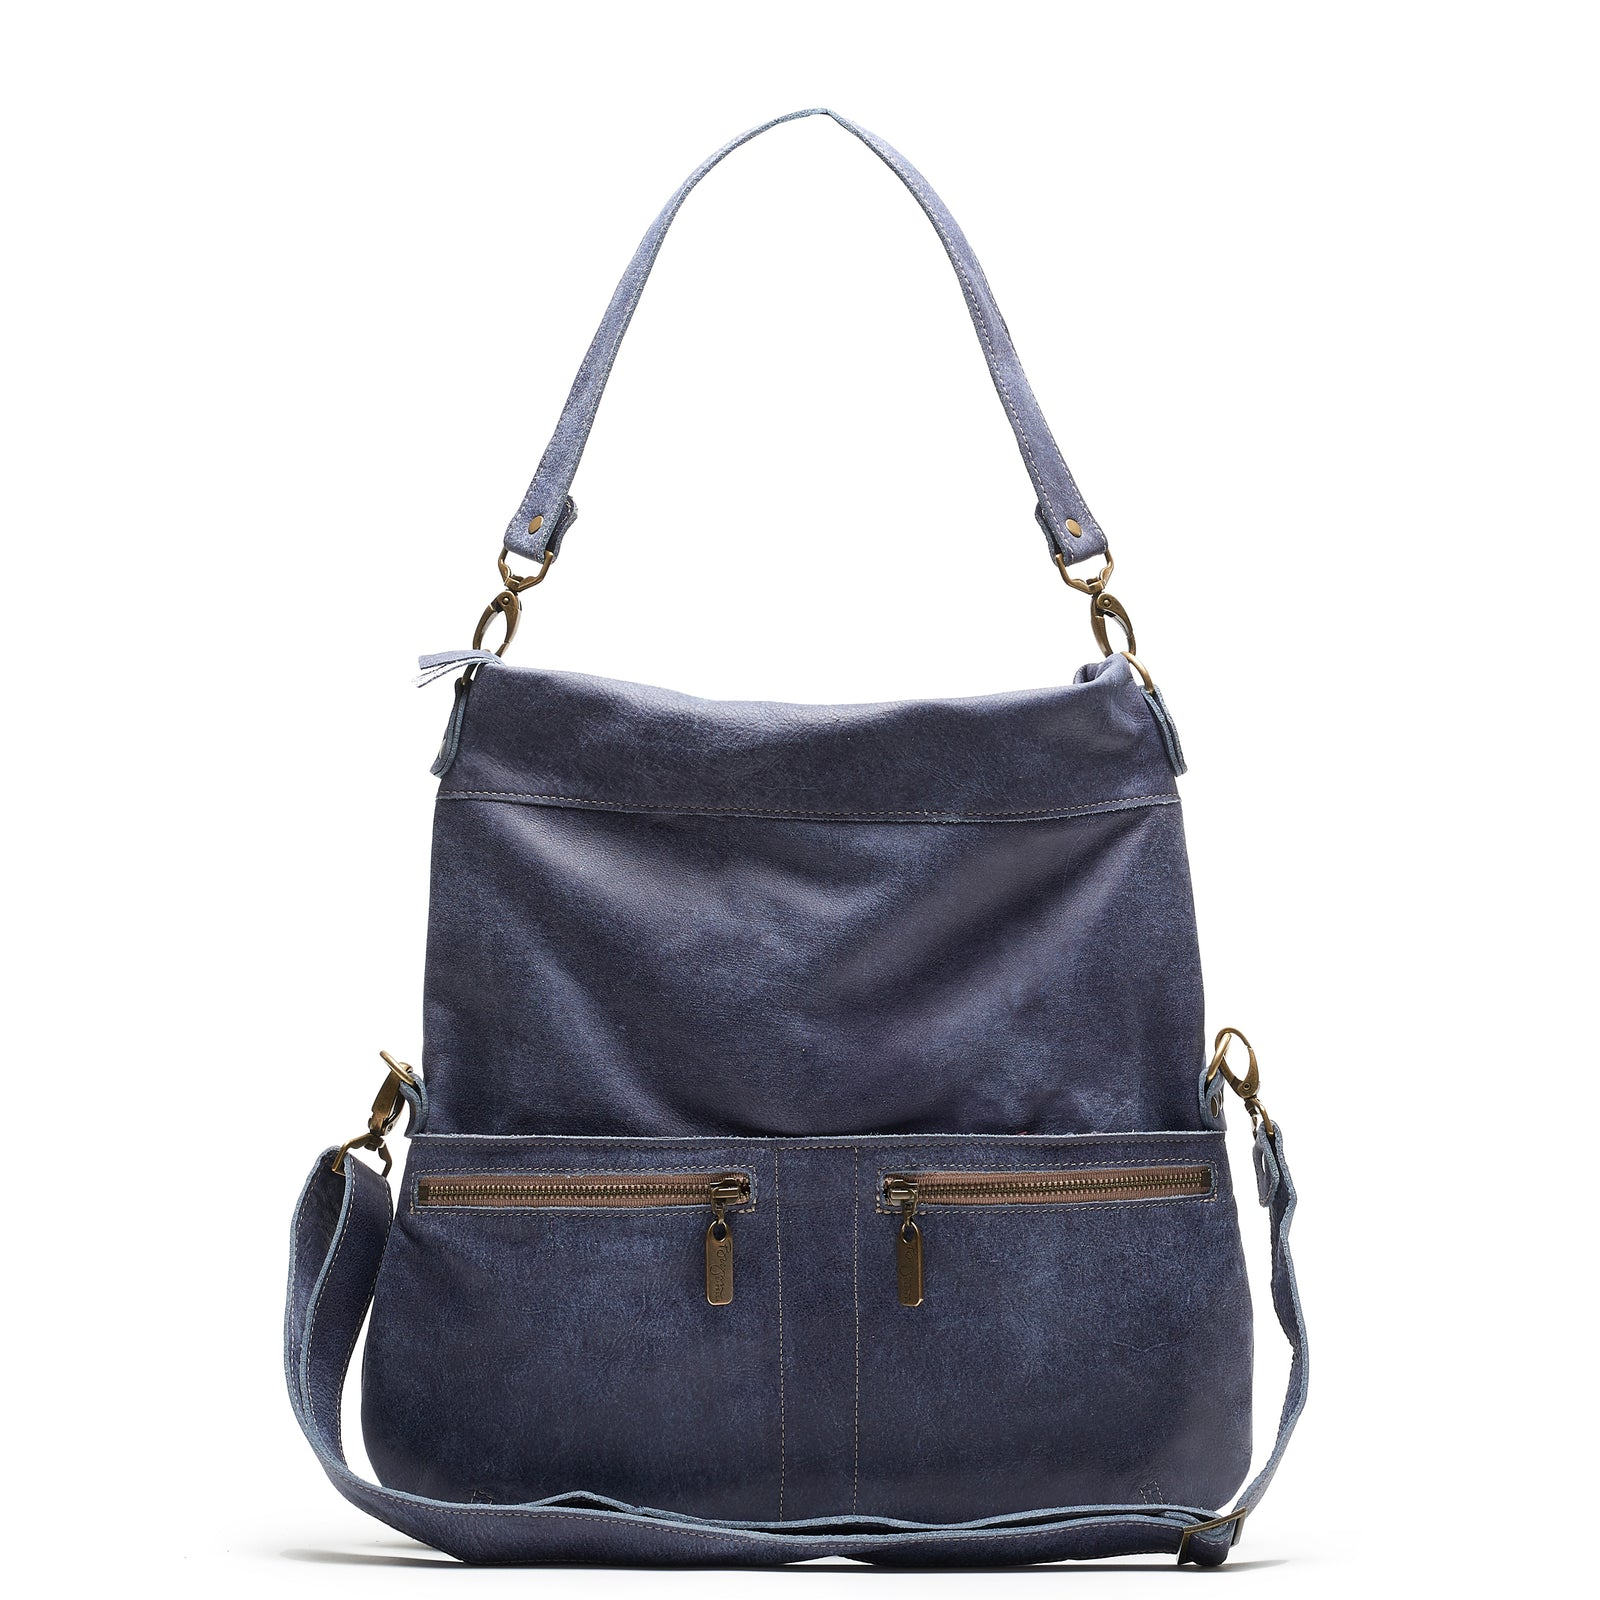 Lauren Crossbody - Bluebell - Brynn Capella, Large Crossbody